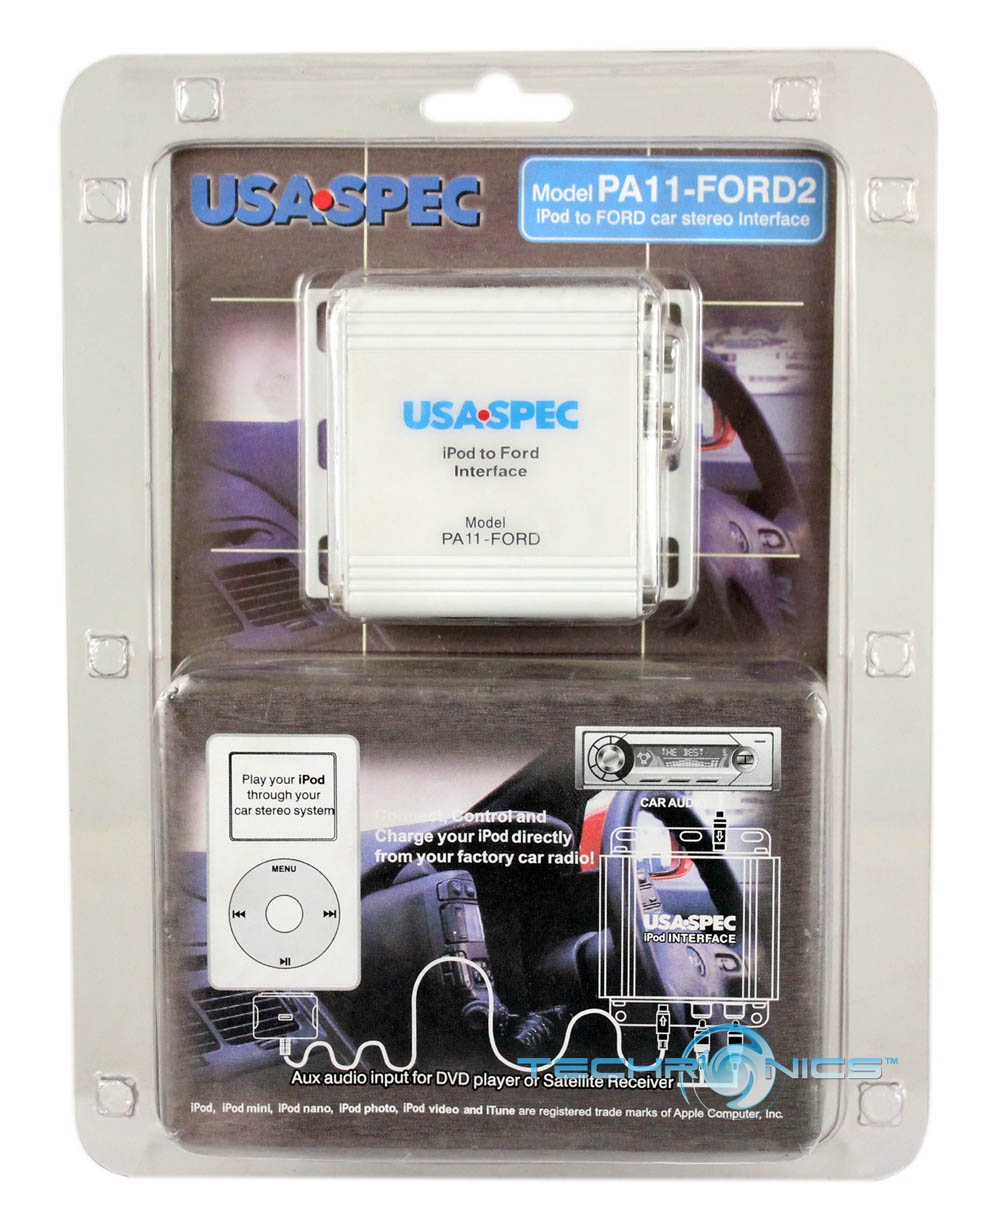 USASPEC PA11-FORD2 IPOD DIRECT CONNECTION INTERFACE FOR FORD FACTORY HEADUNITS